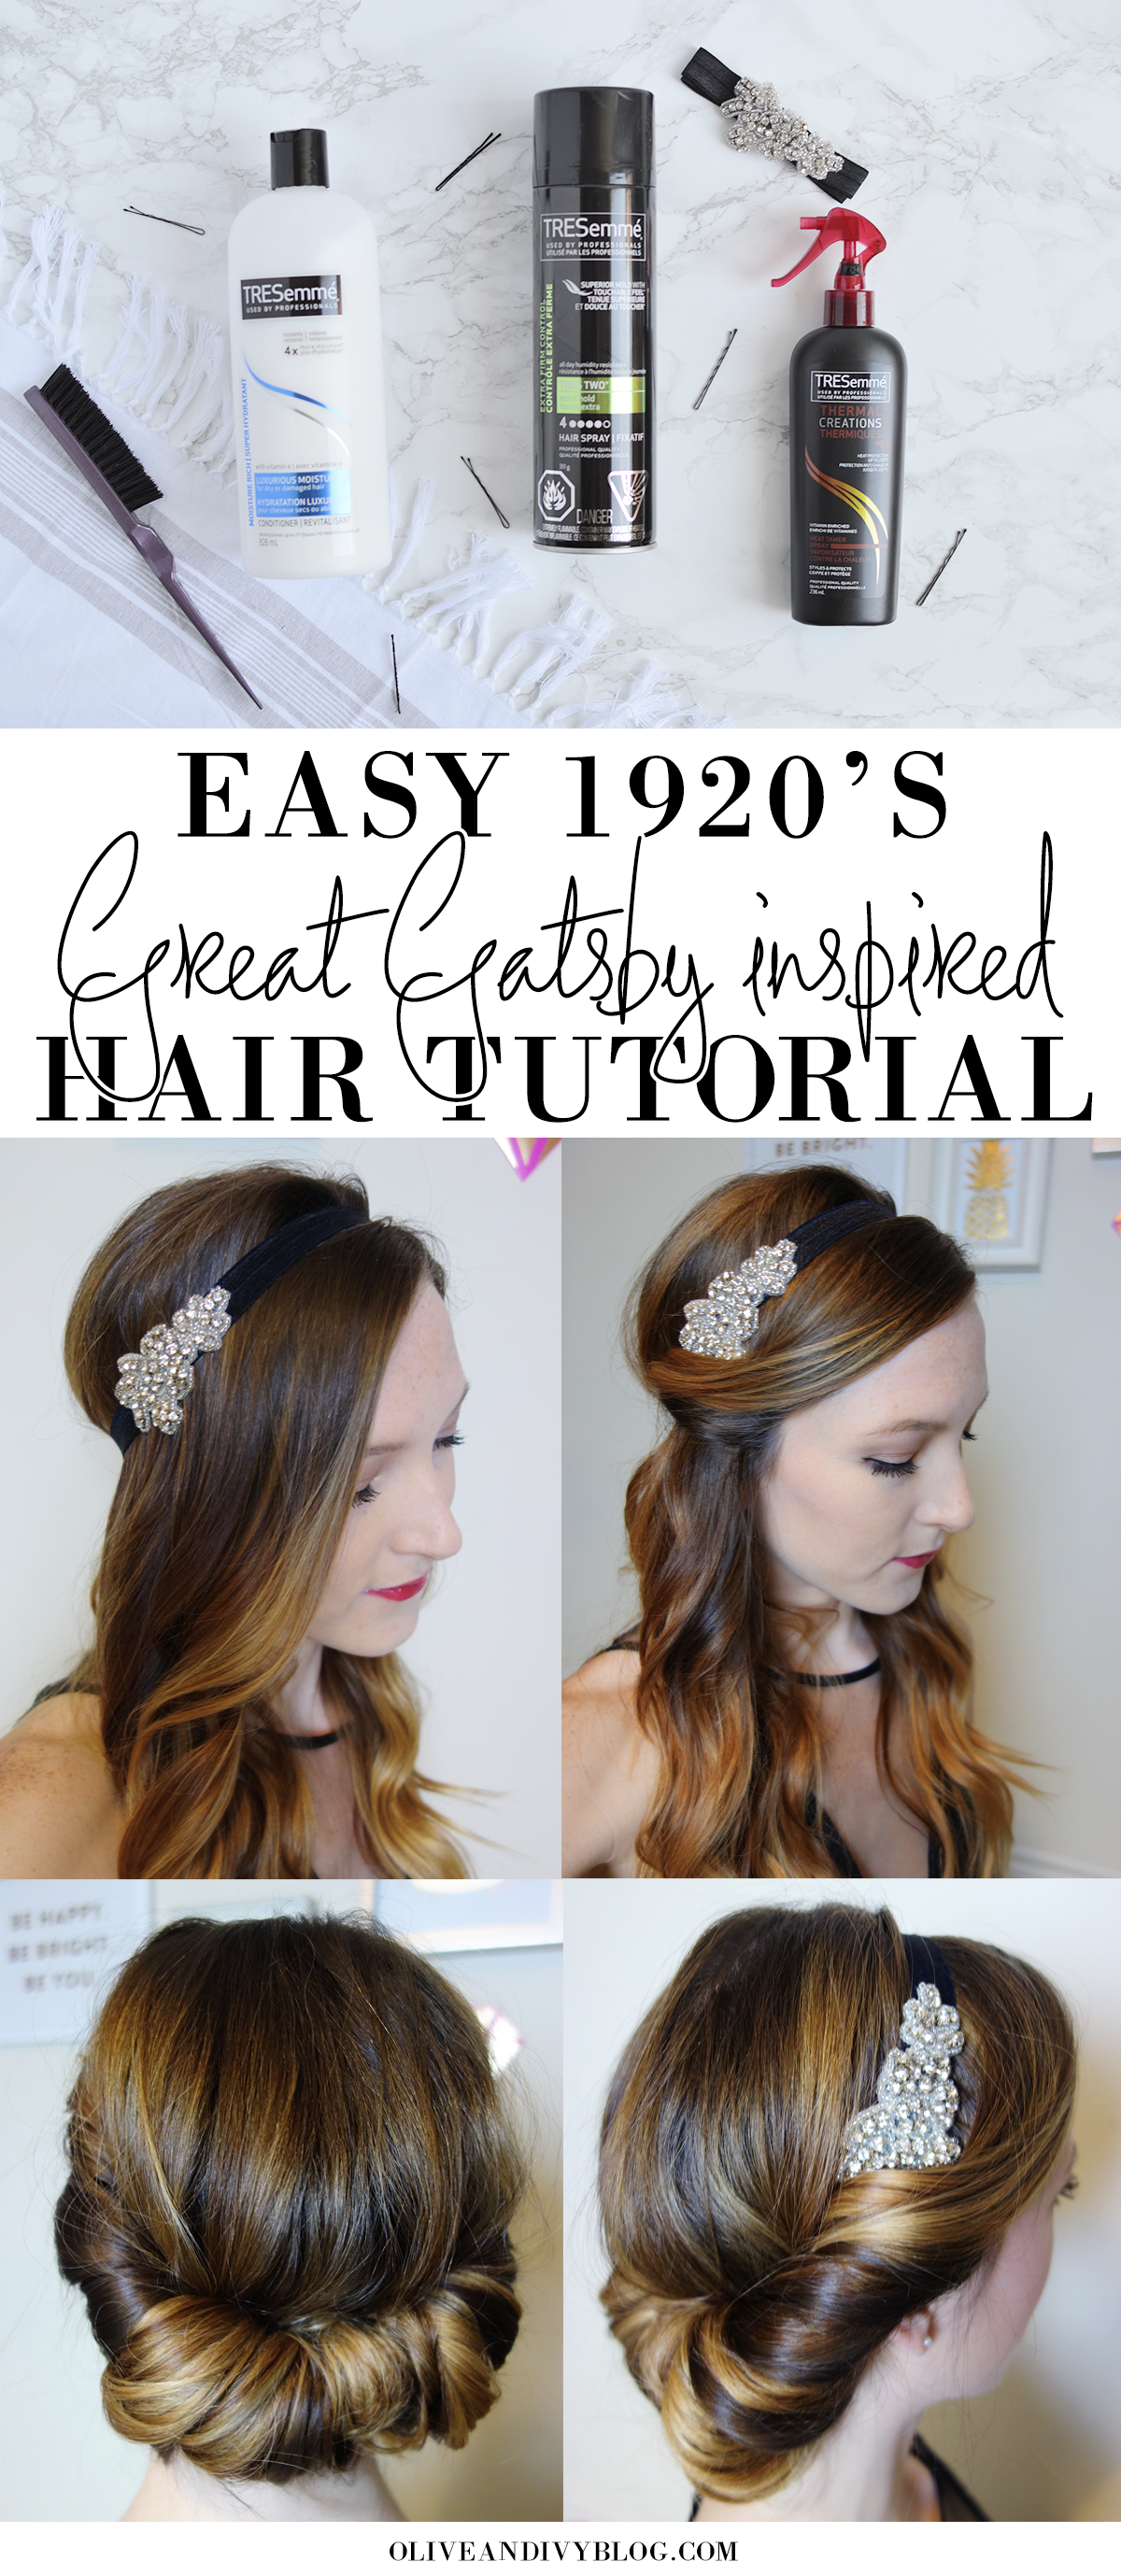 Pin By Boyhairstyles Pablo On References For Eva Gatsby Hair Great Gatsby Hairstyles 1920s Hair Tutorial